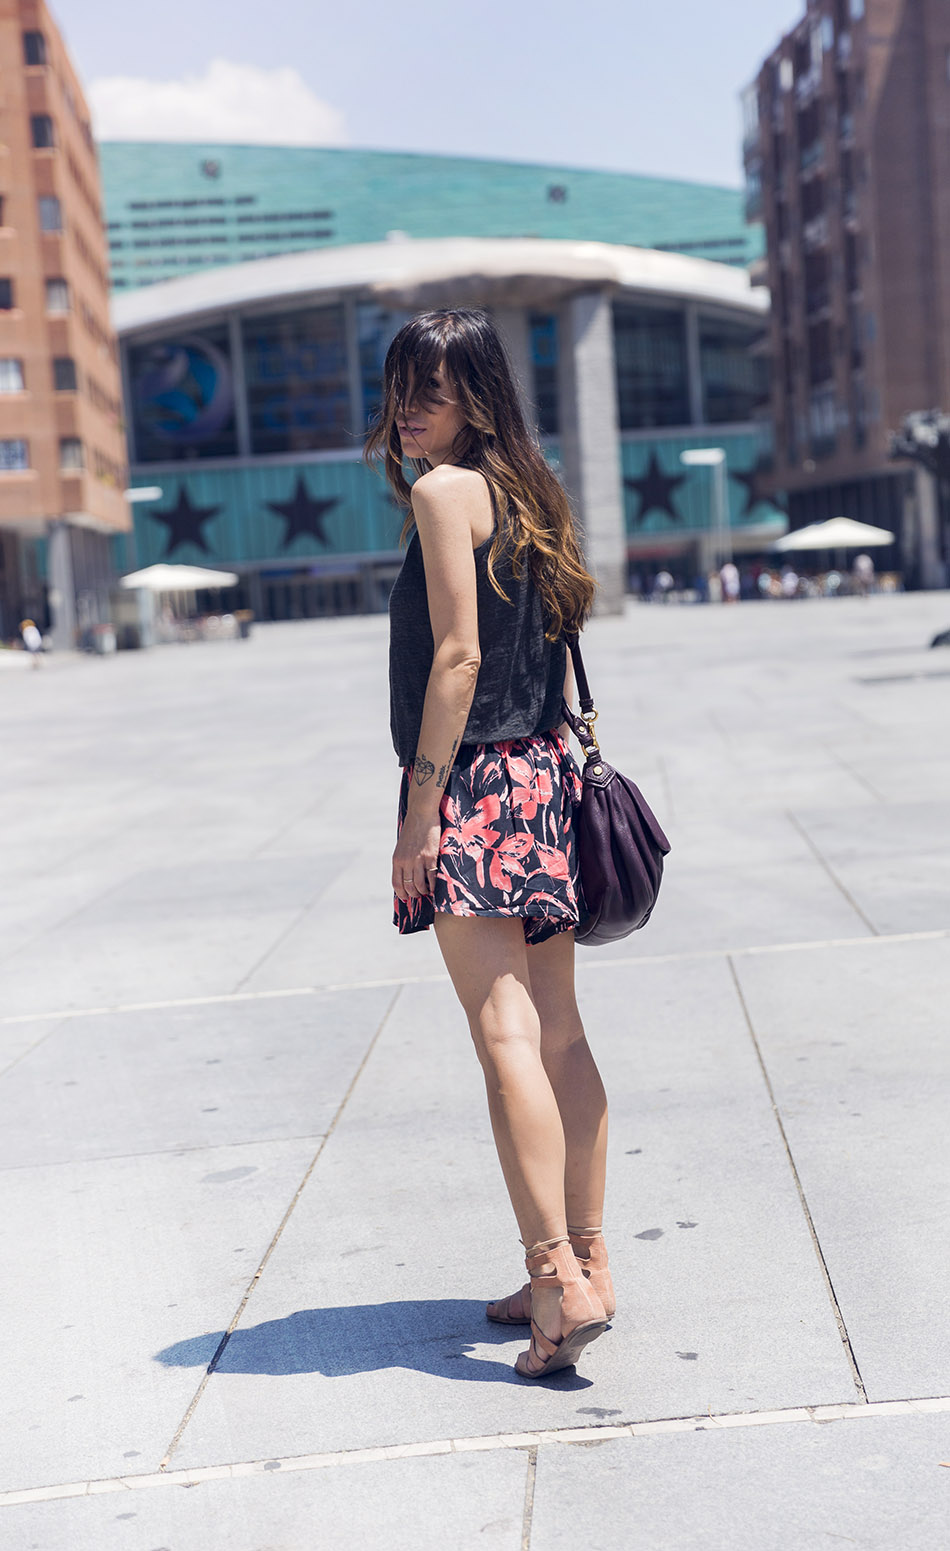 street style july 2016 outfits review bárbara crespo 04